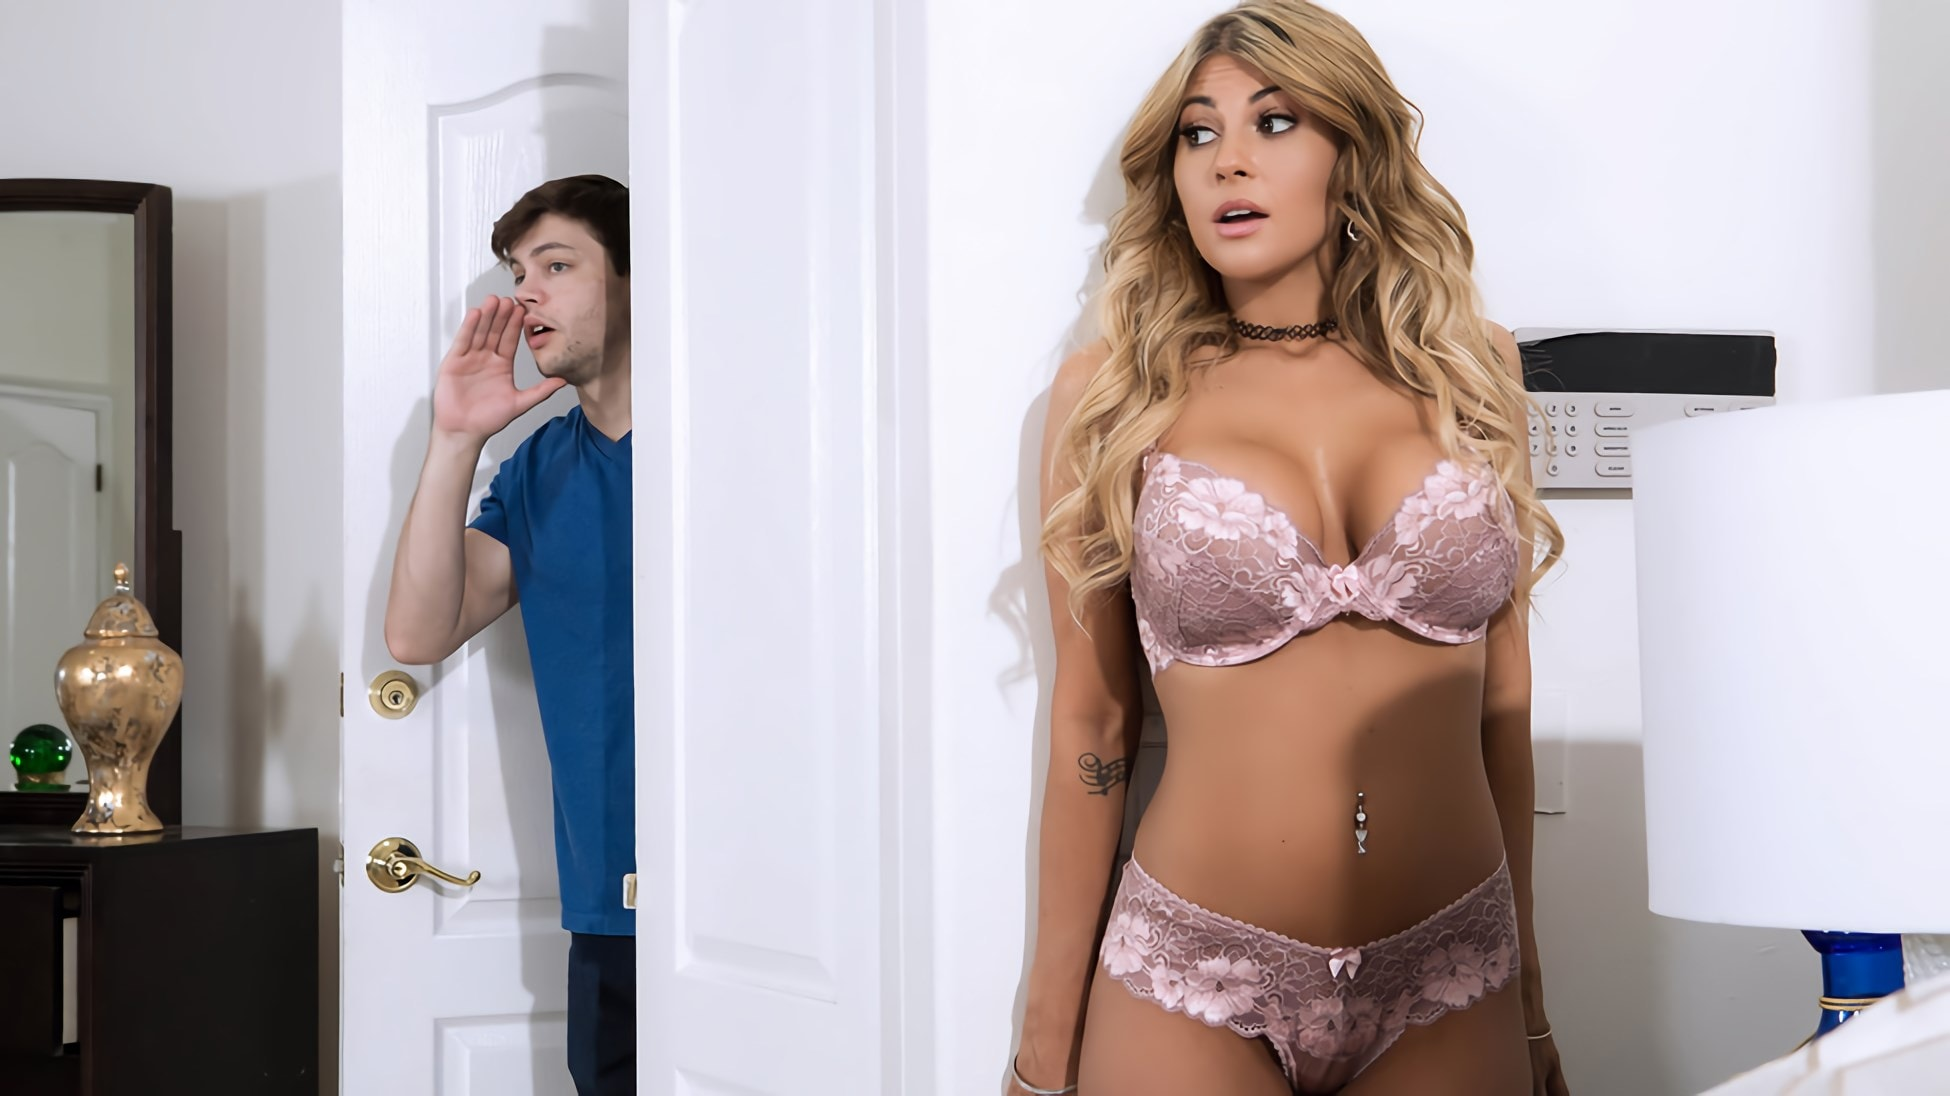 Brazzers 'Sister Swap: Part 1' starring Kayla Kayden (photo 6)